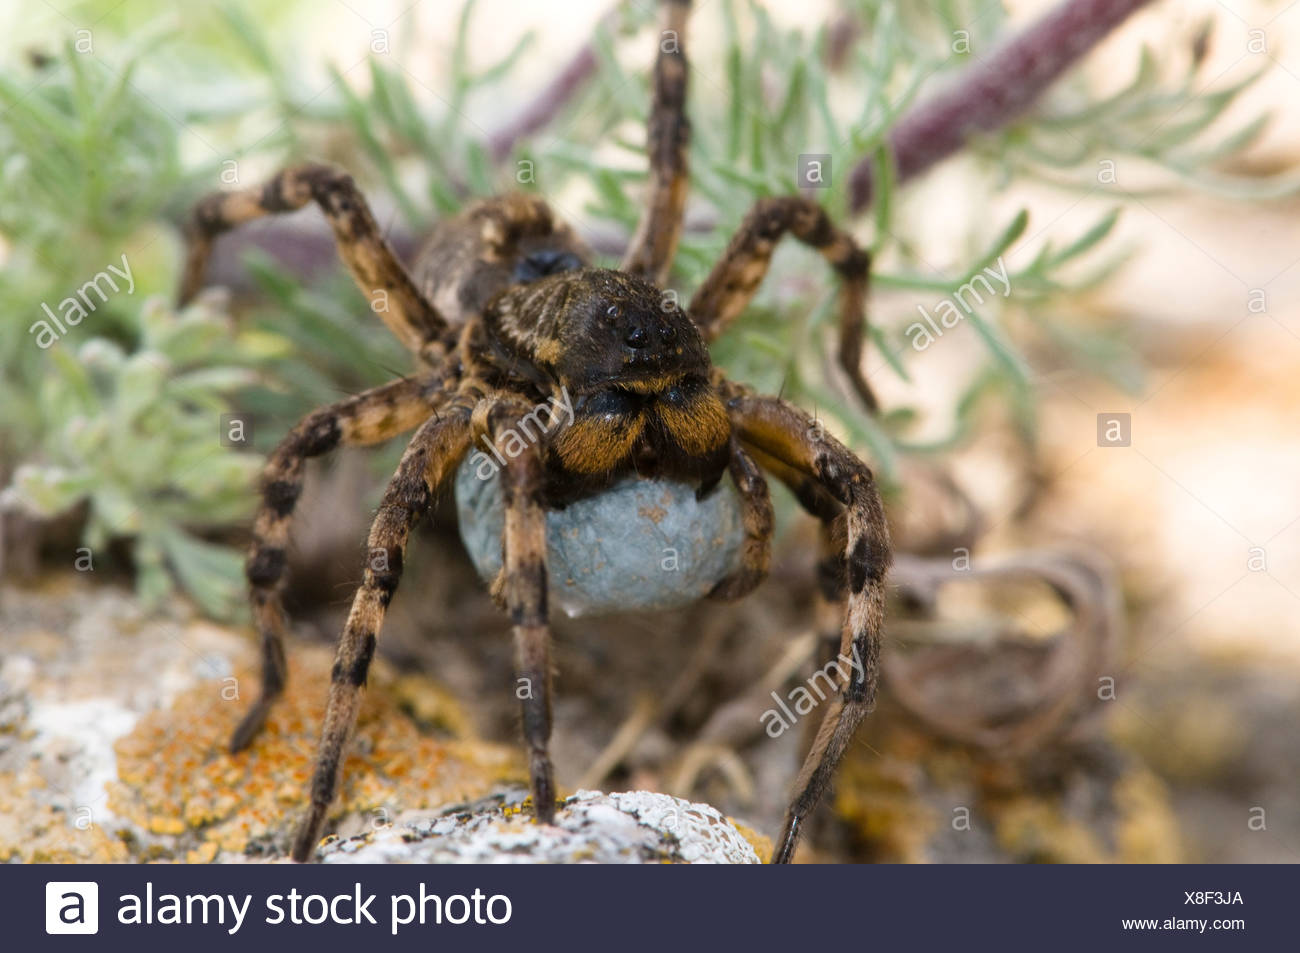 European tarantula (Lycosa sp.)  with cocoon, Dobruja, Romania - Stock Image